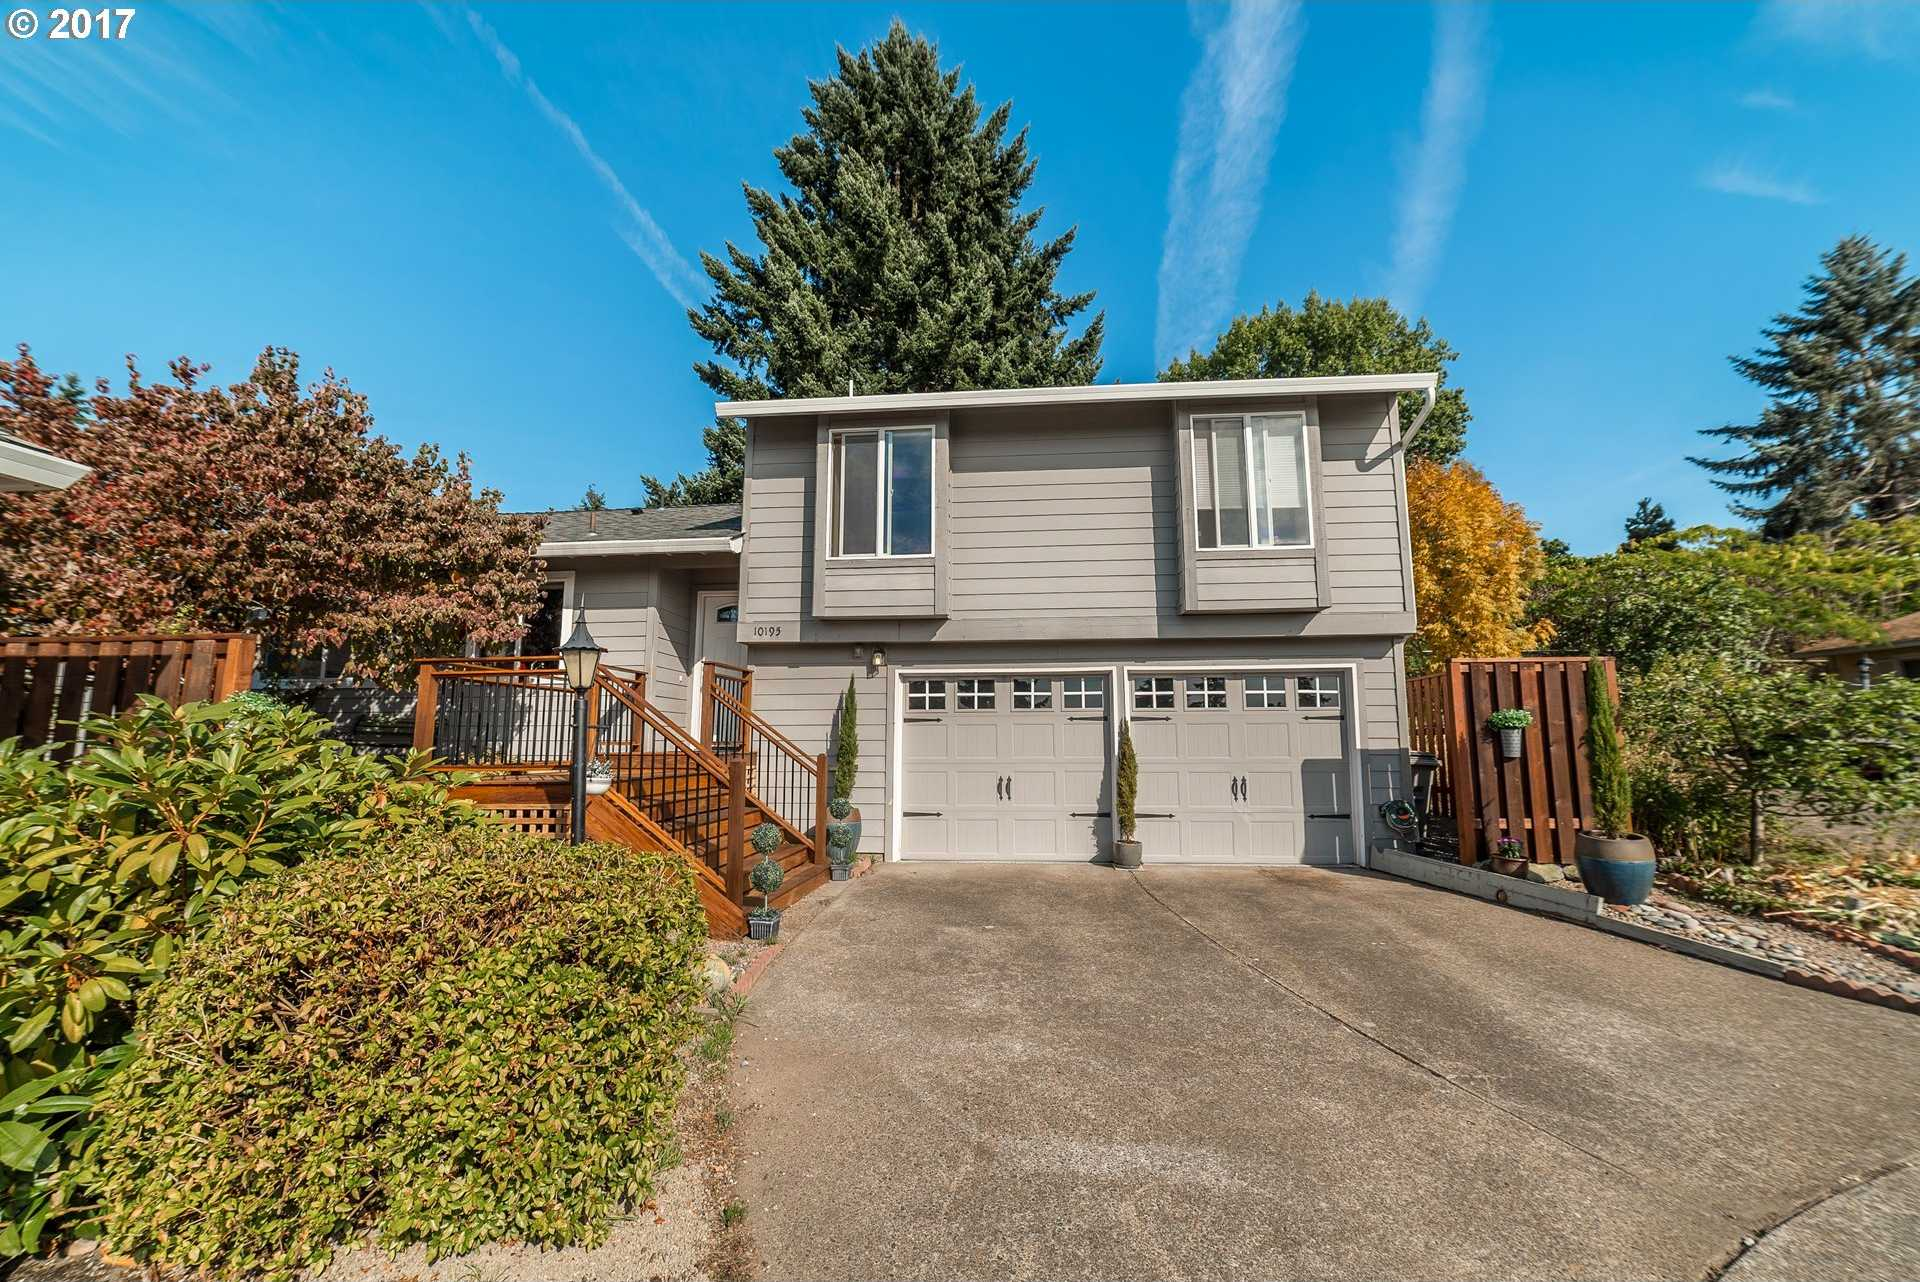 $472,500 - 3Br/3Ba -  for Sale in Summerfield, Tigard